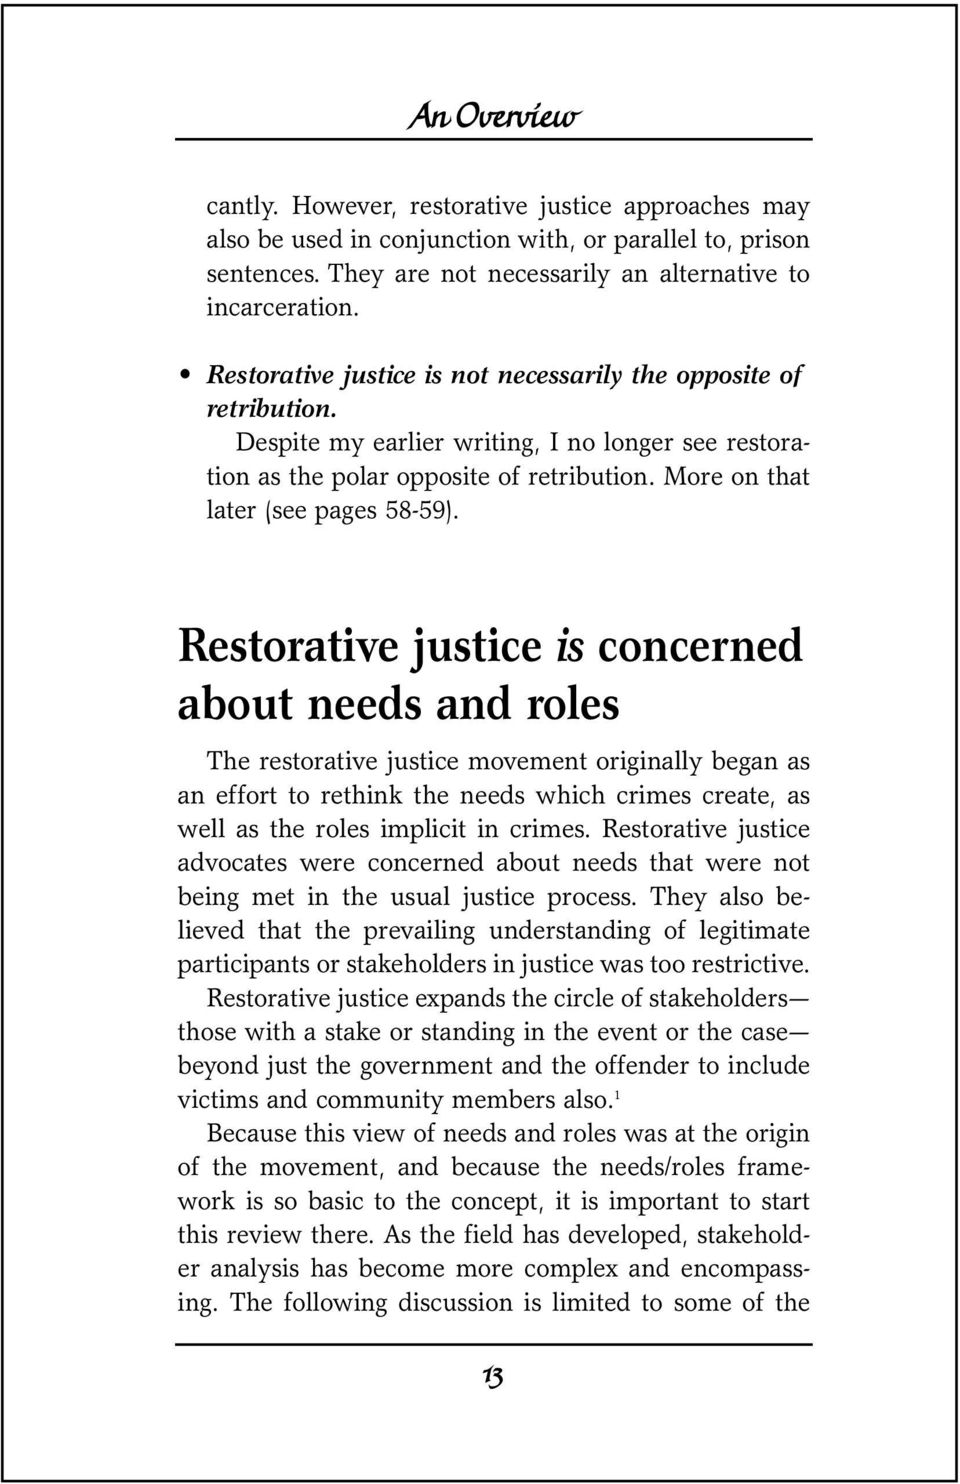 Restorative justice is concerned about needs and roles The restorative justice movement originally began as an effort to rethink the needs which crimes create, as well as the roles implicit in crimes.